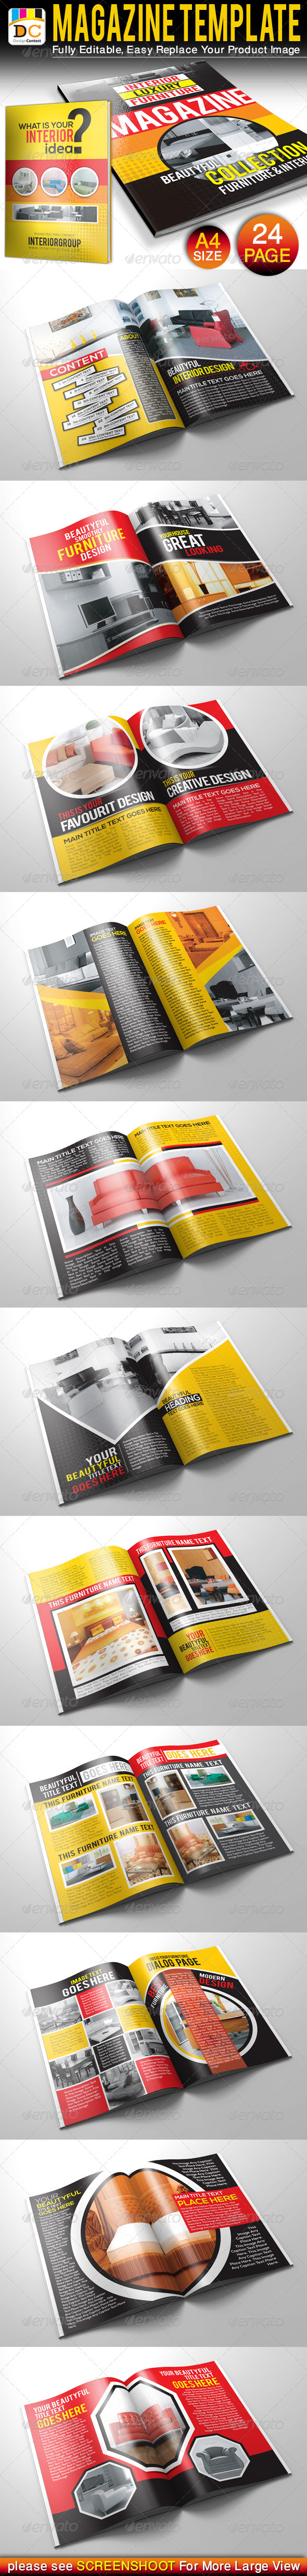 Furniture Design Templates 24 pages furniture & interior magazine templatescontestdesign